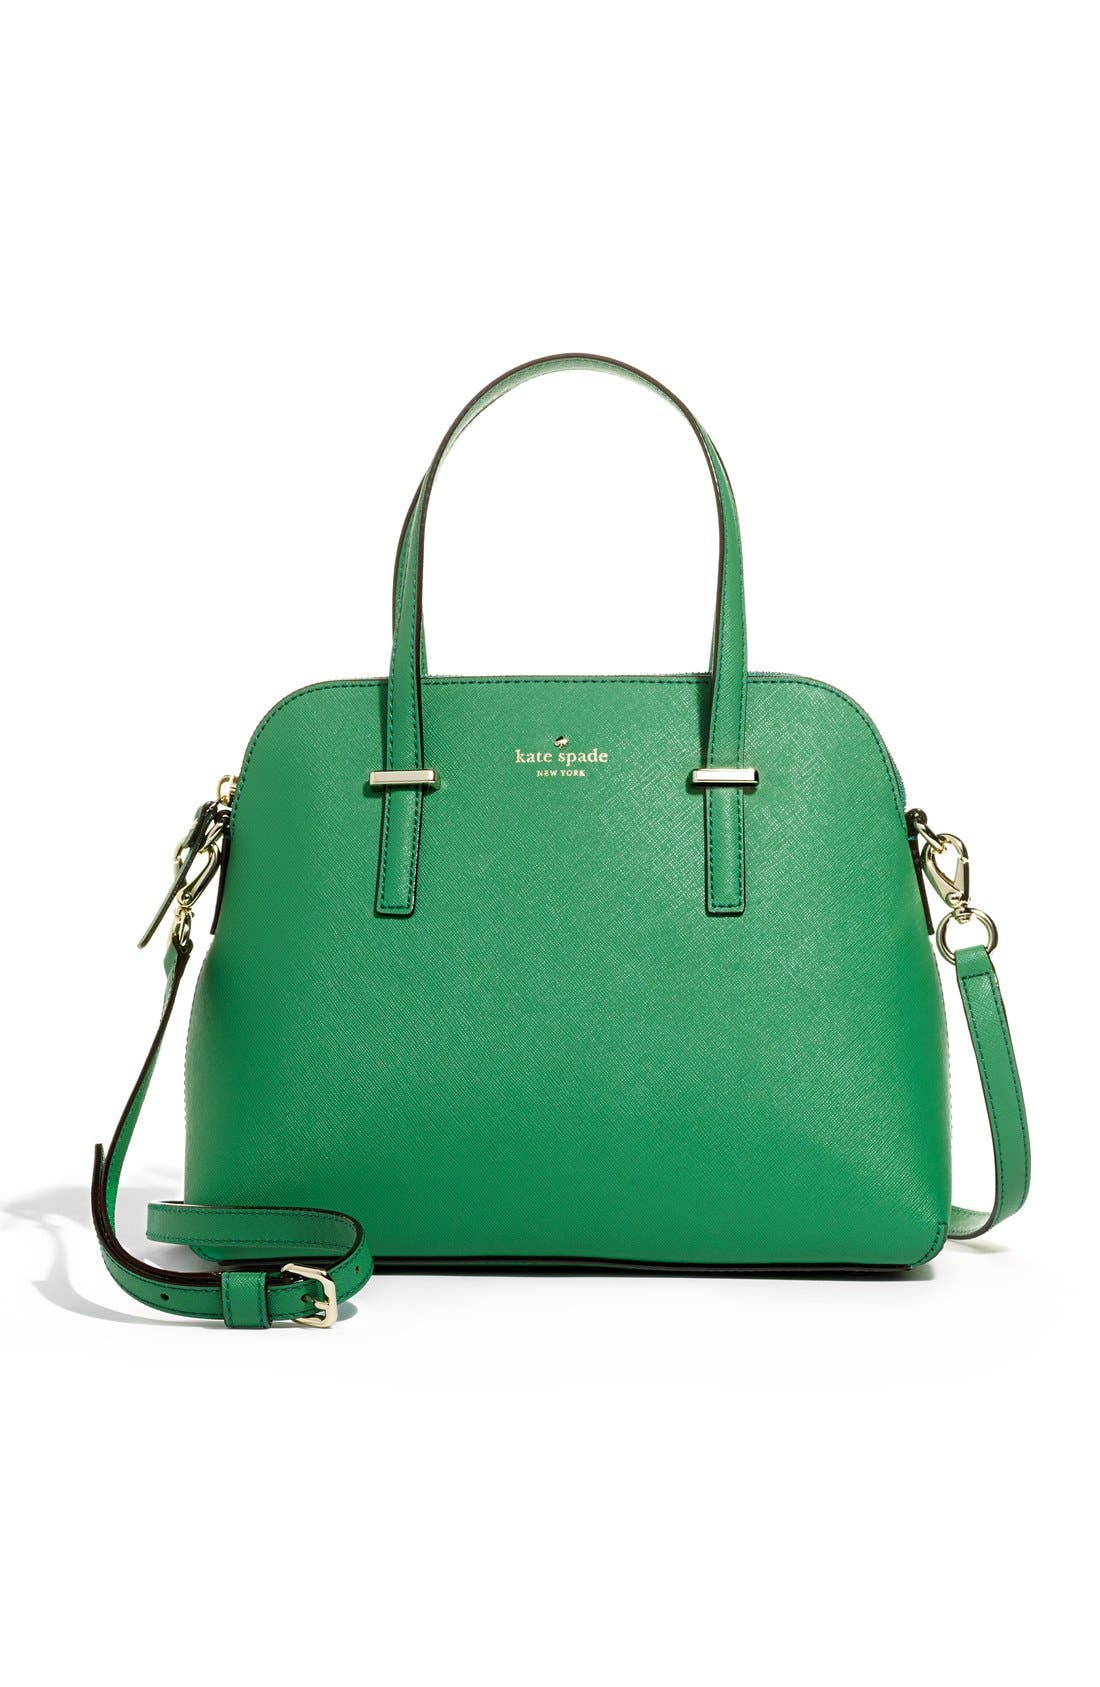 KATE SPADE NEW YORK, 'cedar street - maise' leather satchel, Alternate thumbnail 2, color, 075